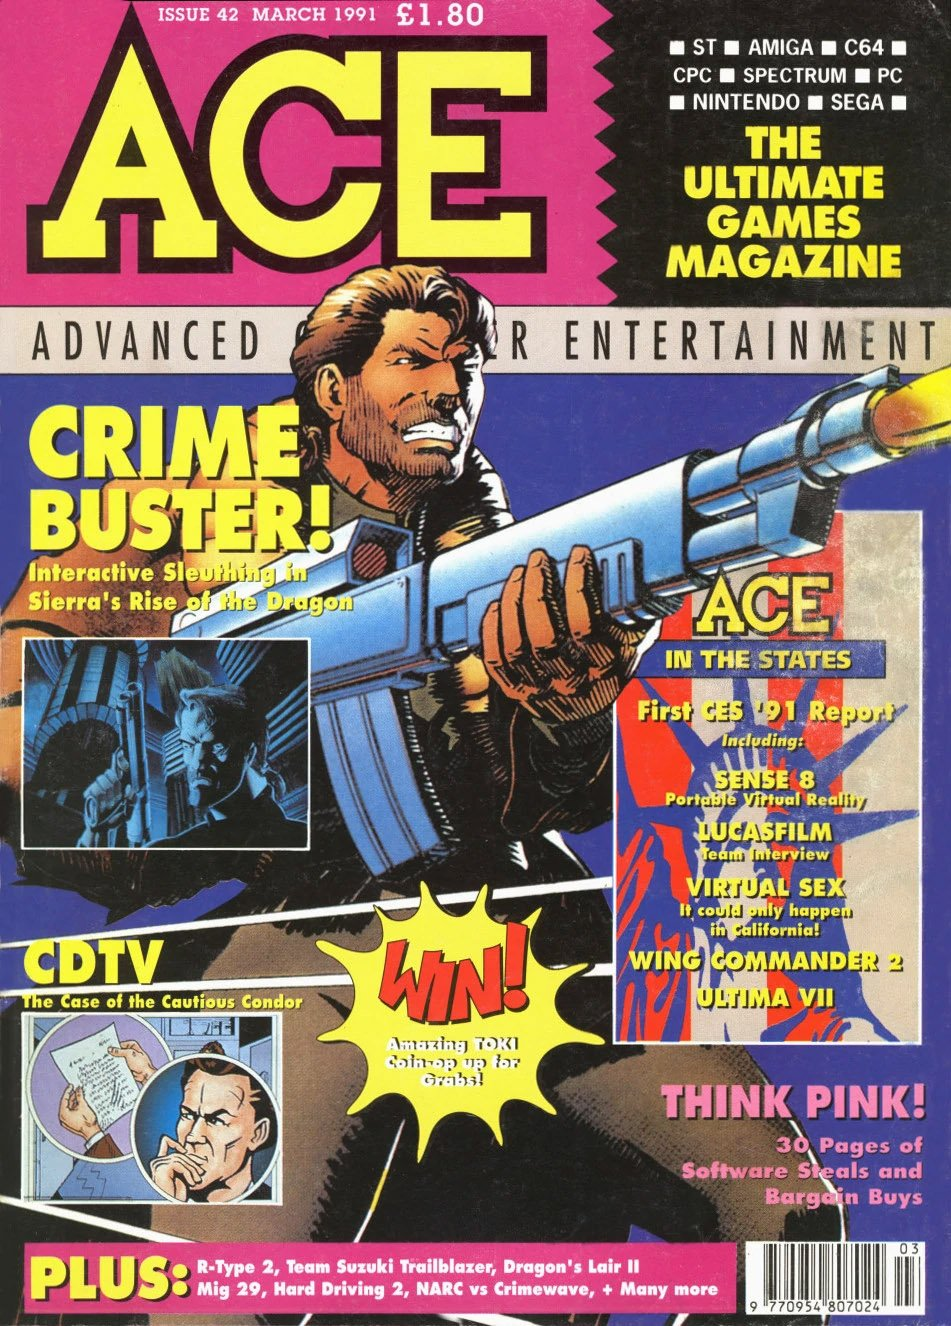 ACE 42 (March 1991)